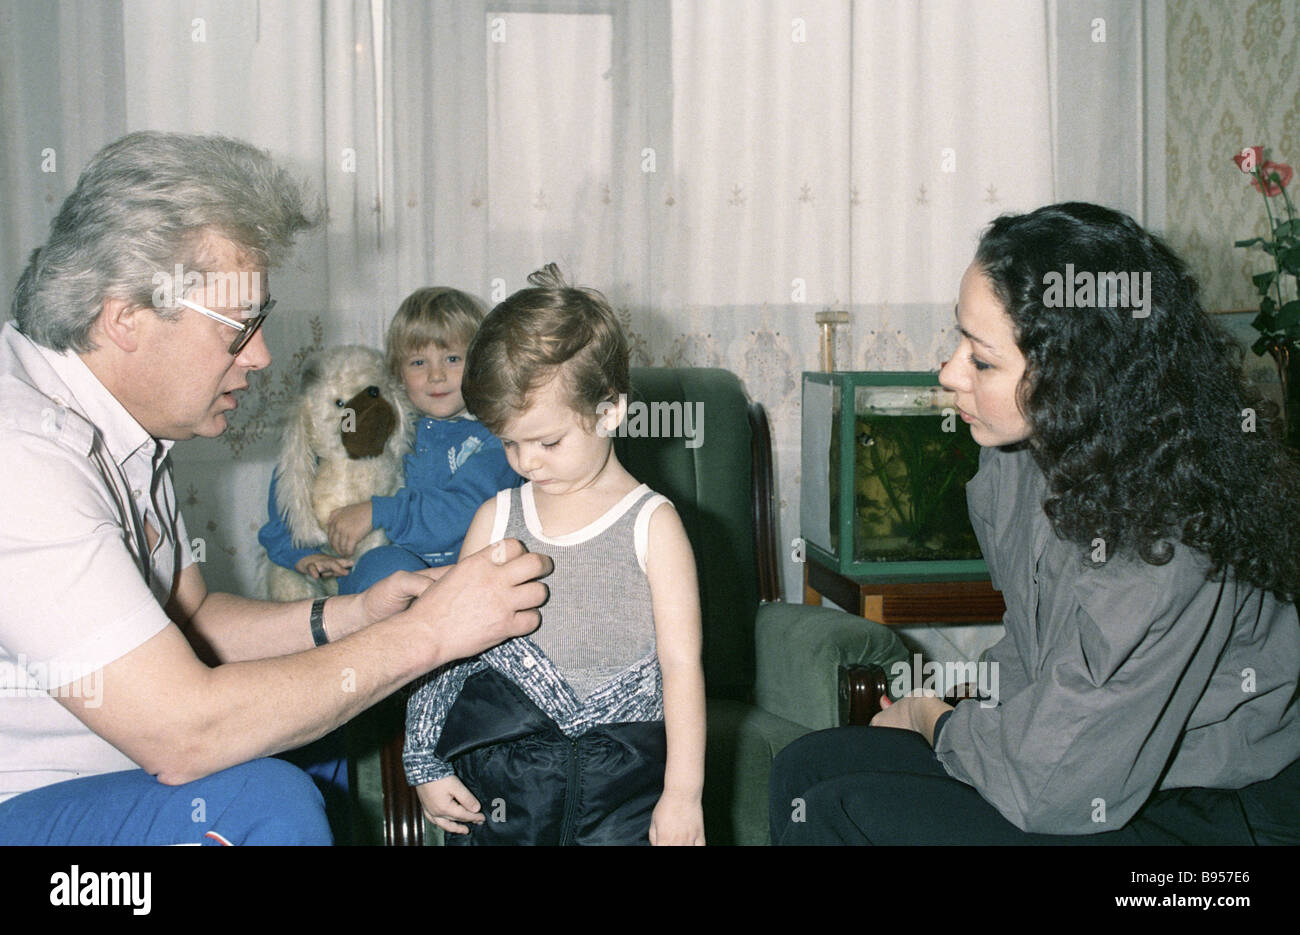 Psychic Alan Chumak left is conducting a healing session with a child - Stock Image